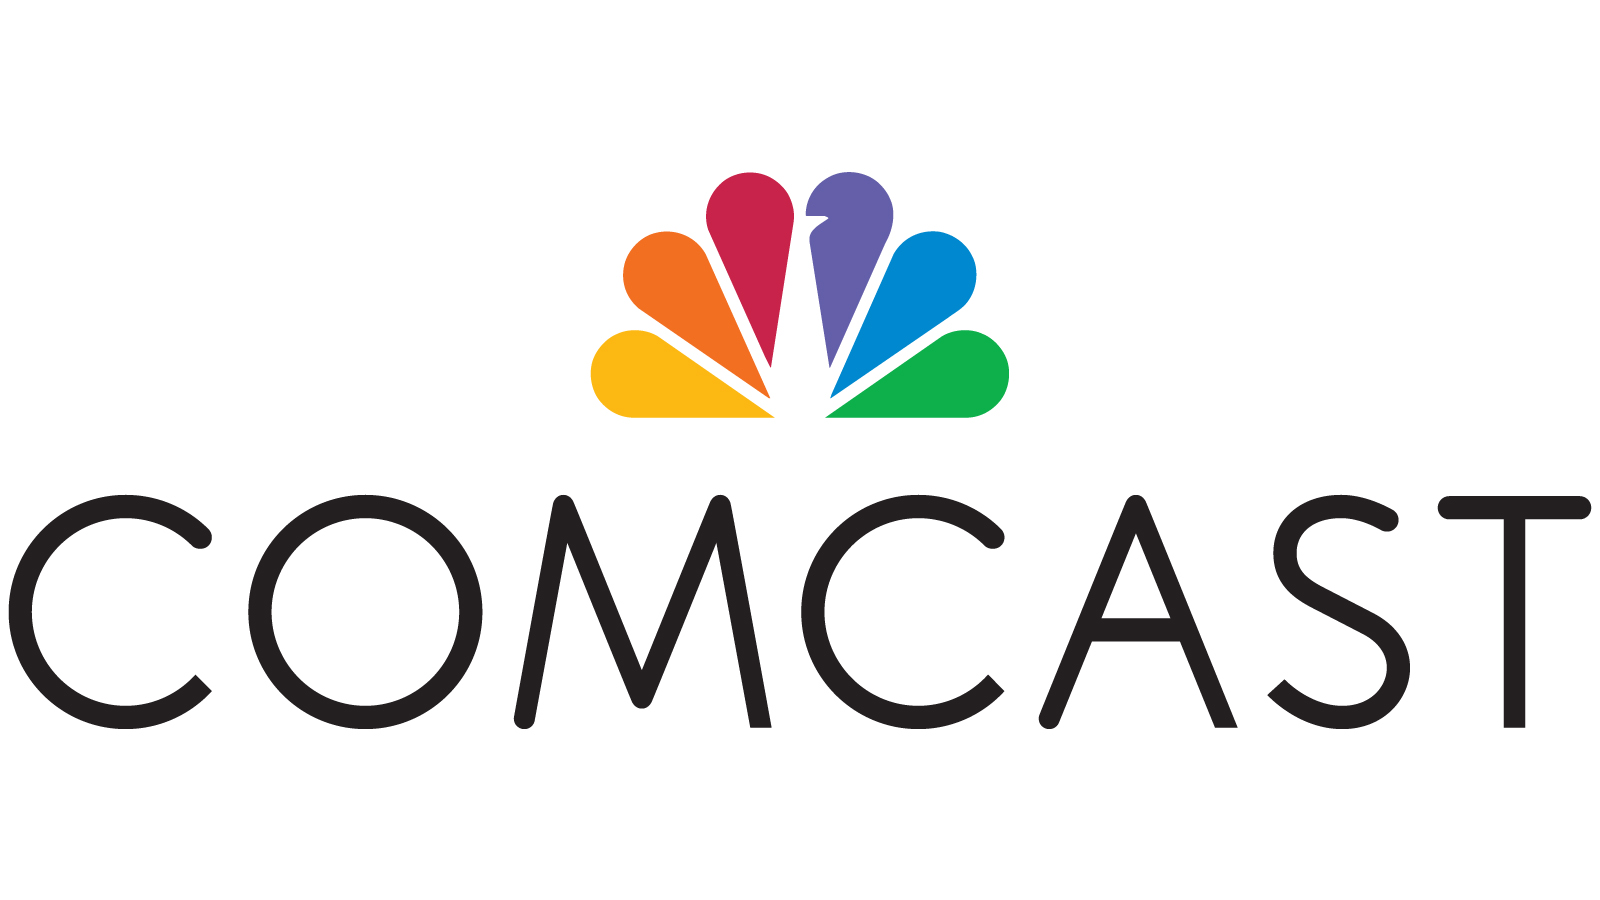 Texas Southern University Partners with Comcast to Provide